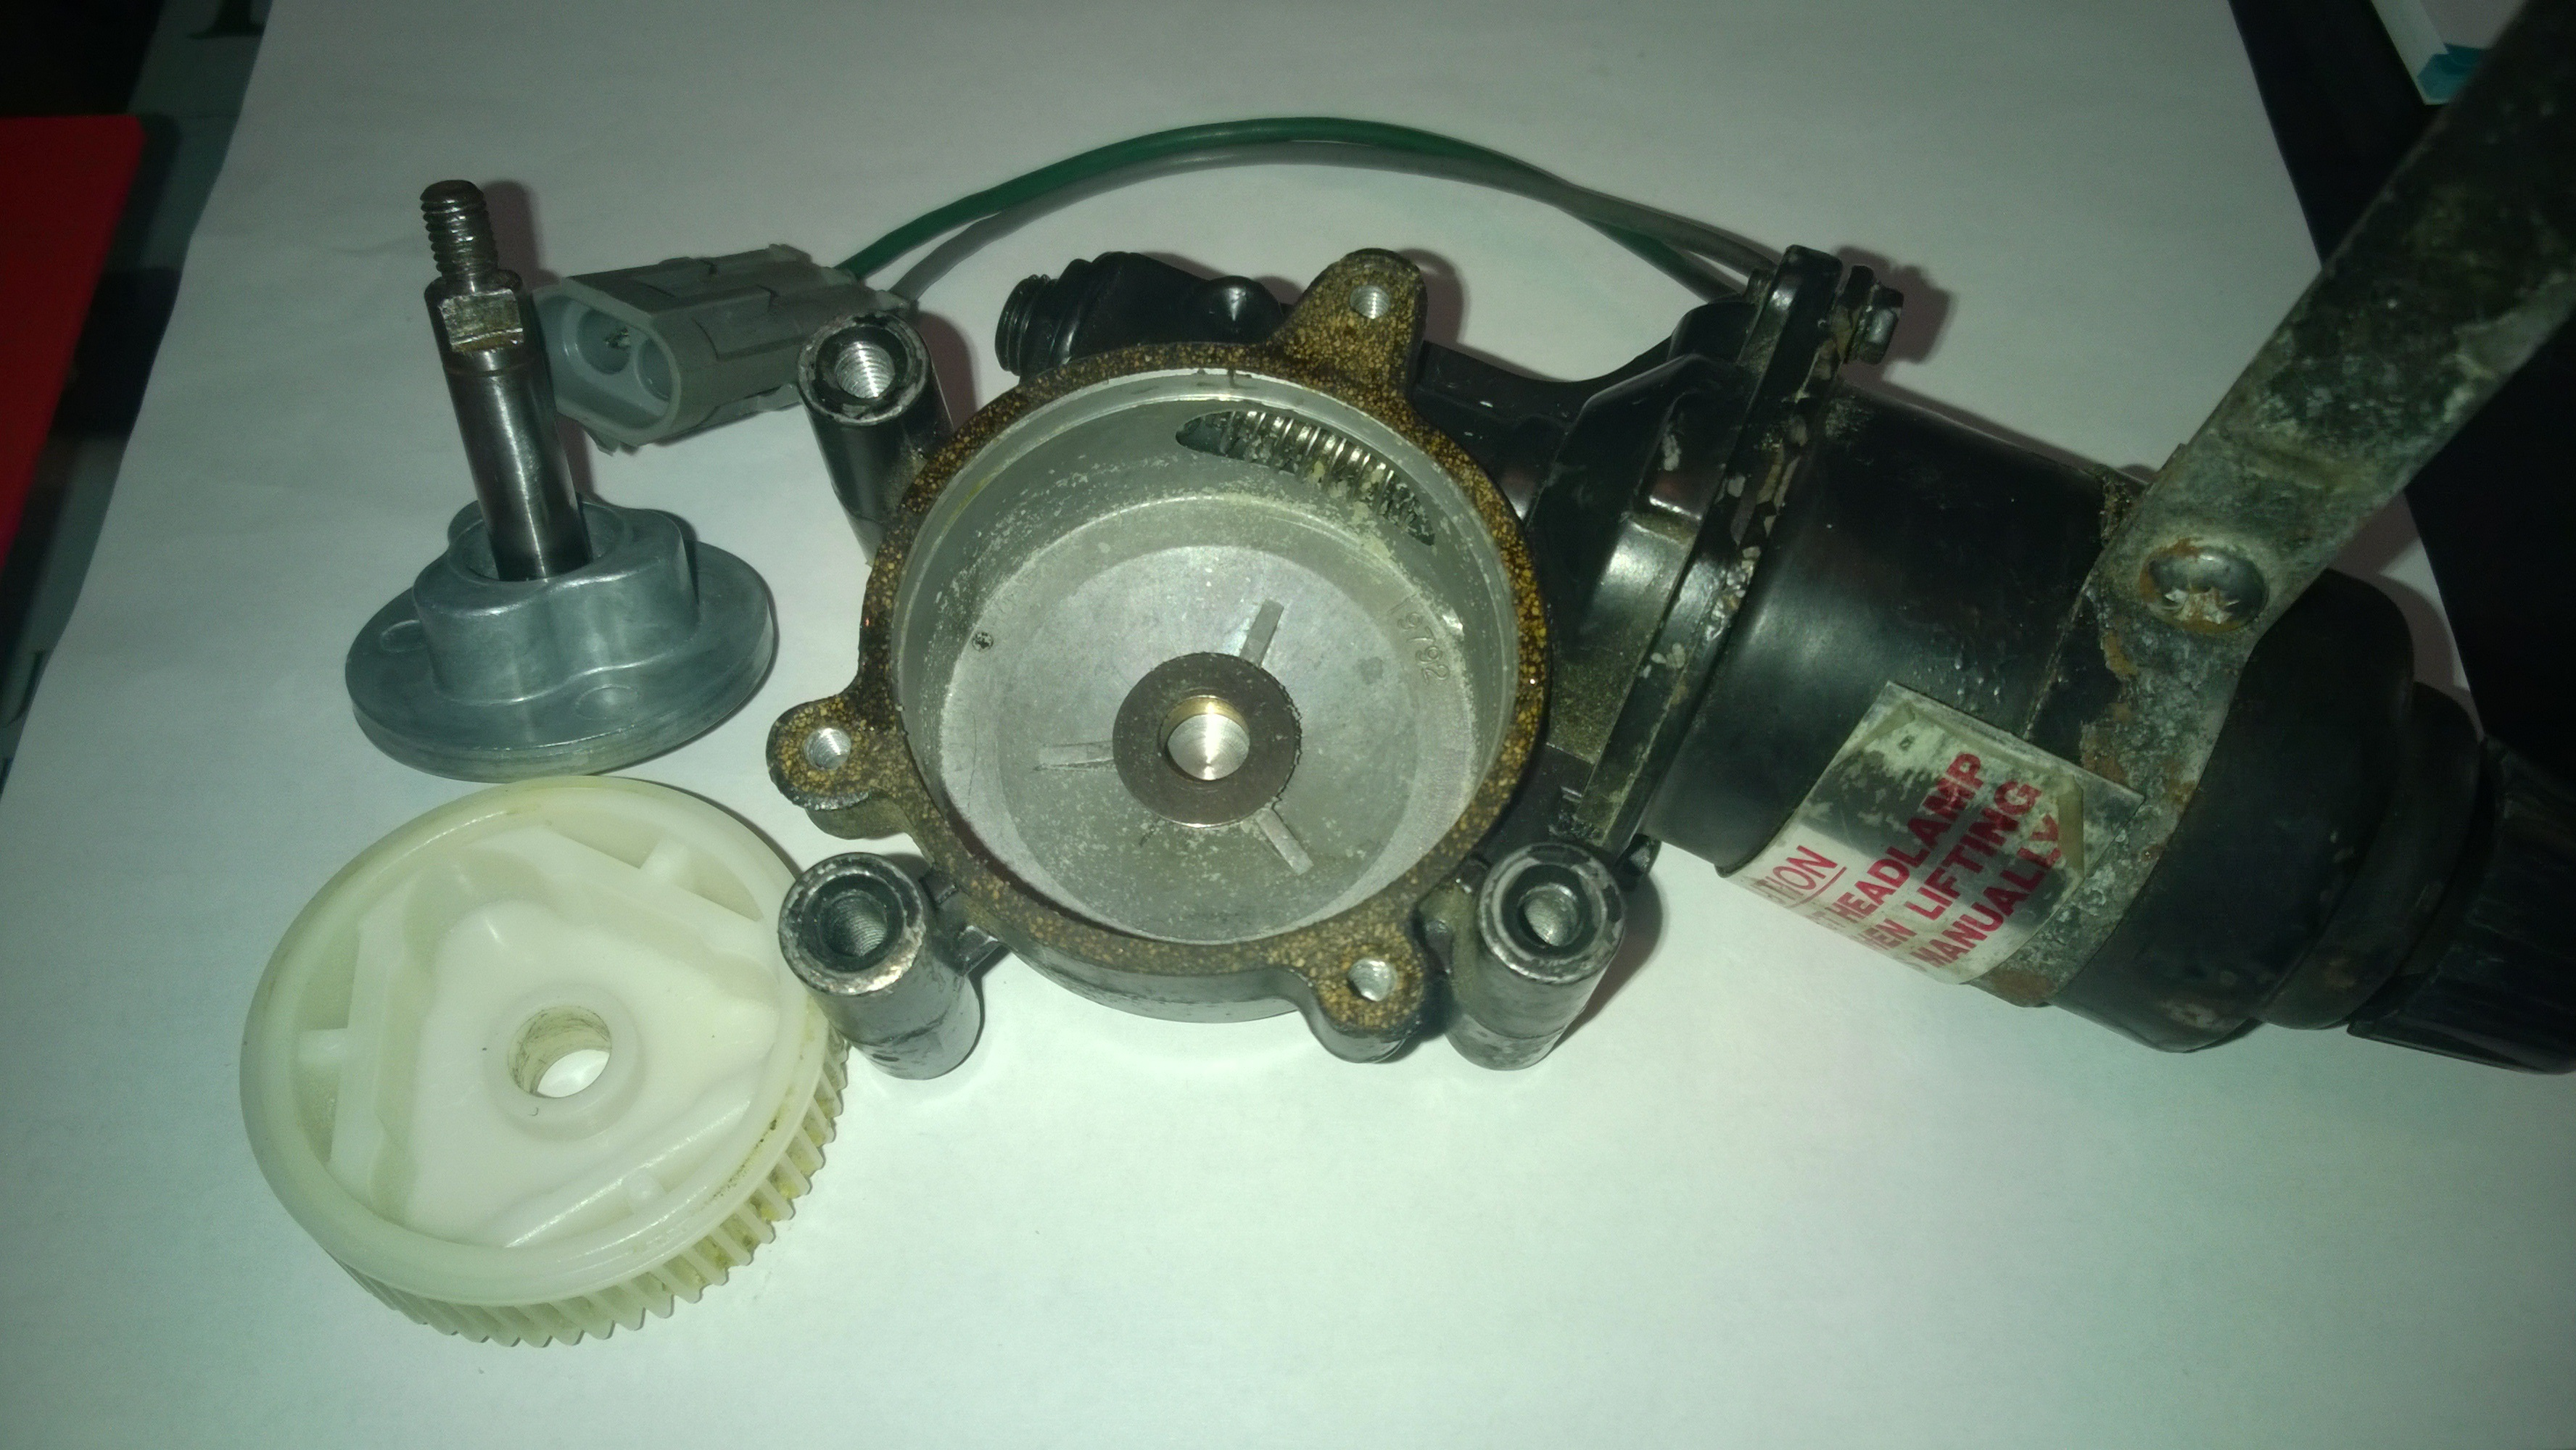 Lotus Esprit/Elan Headlight Rebuild Kits